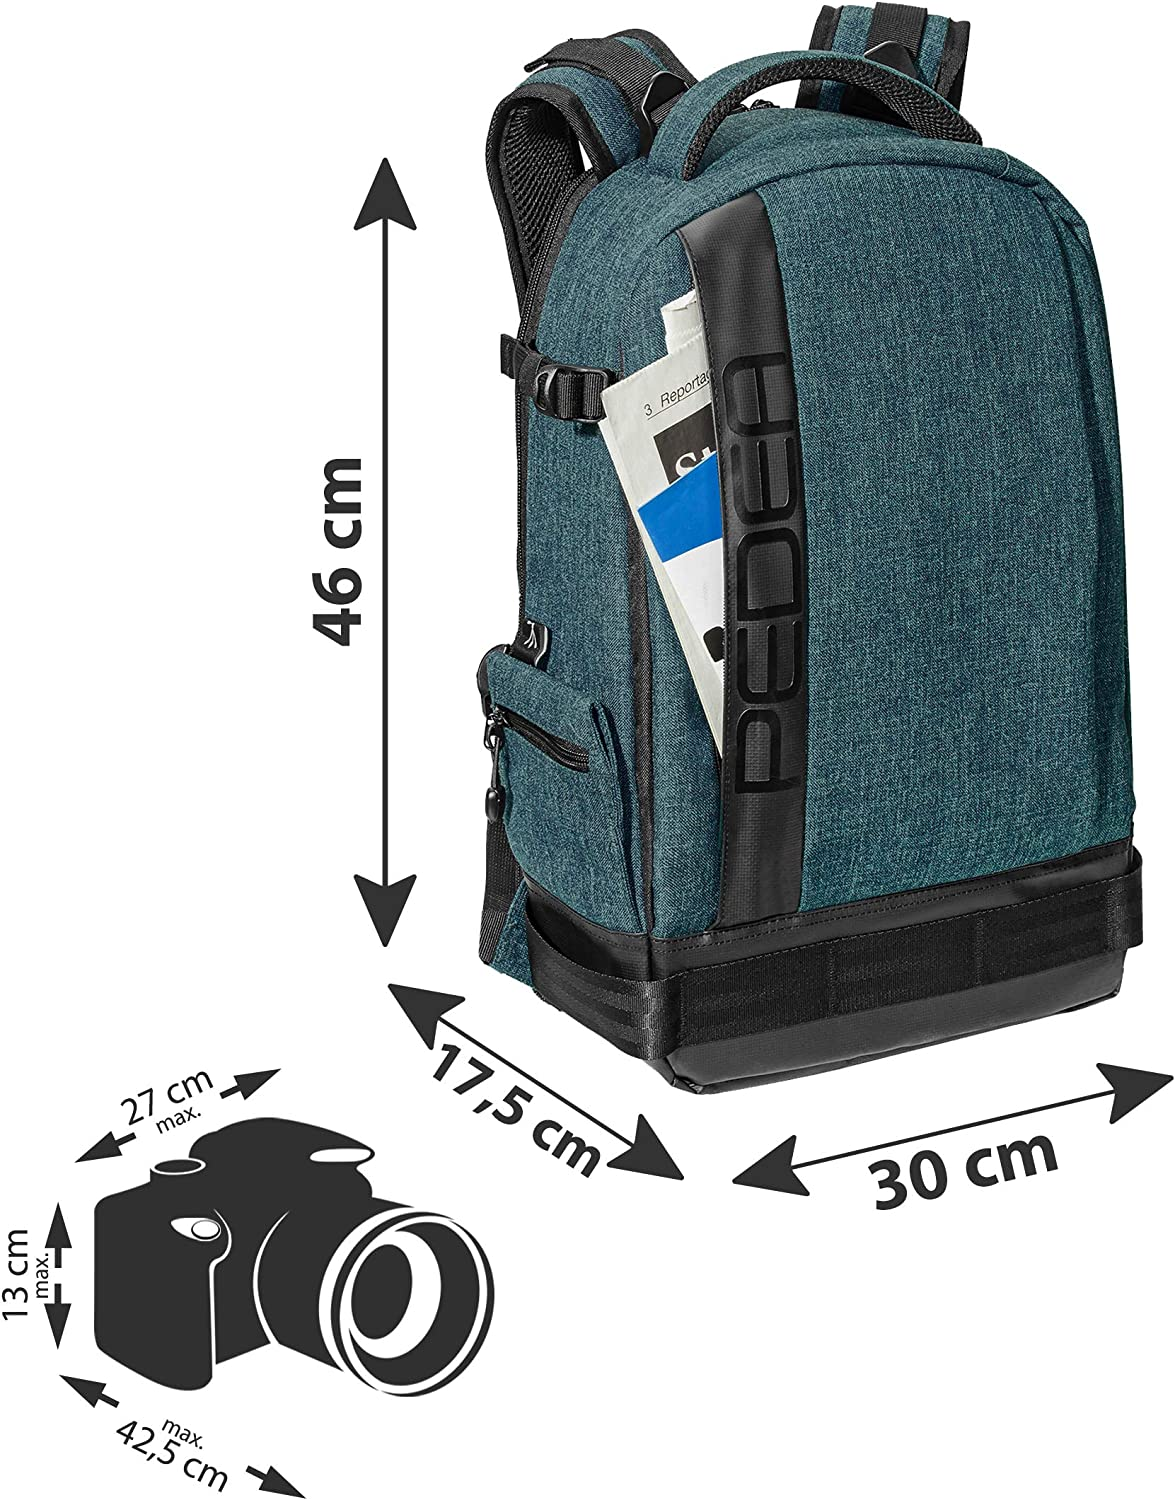 Sony Alpha 7 7M2 7M3 7R II DSC-RX10 PEDEA Fashion DSLR Camera Backpack with Screen Protector for Nikon D500 D750 D3500 D5200 D300 Coolpix B500 Canon EOS 77D 200D 1200D 1300D Petrol